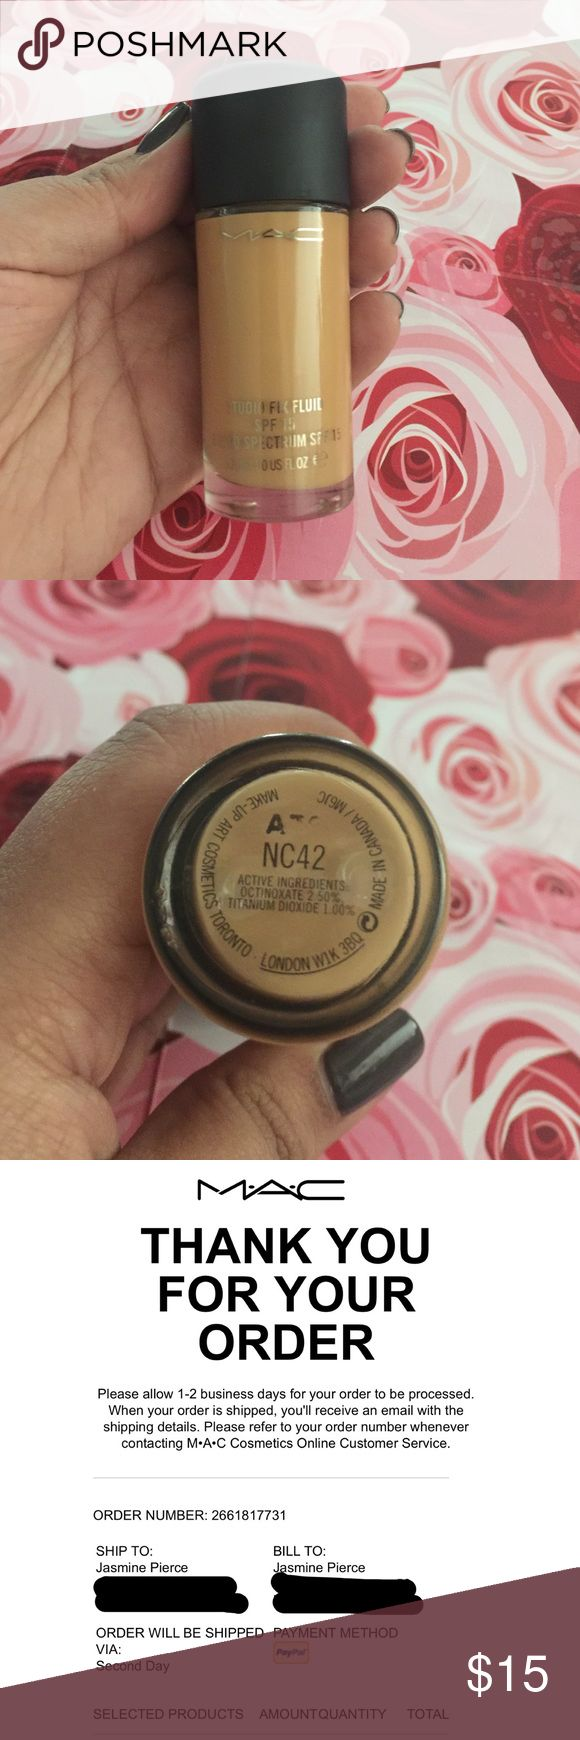 MAC Studio Fix Fluid NC 42 Purchased from MAC website. I have the receipt for proof. Used a couple of times but was too dark. I would say there's about 80% left in the bottle. No pump. Makeup Foundation